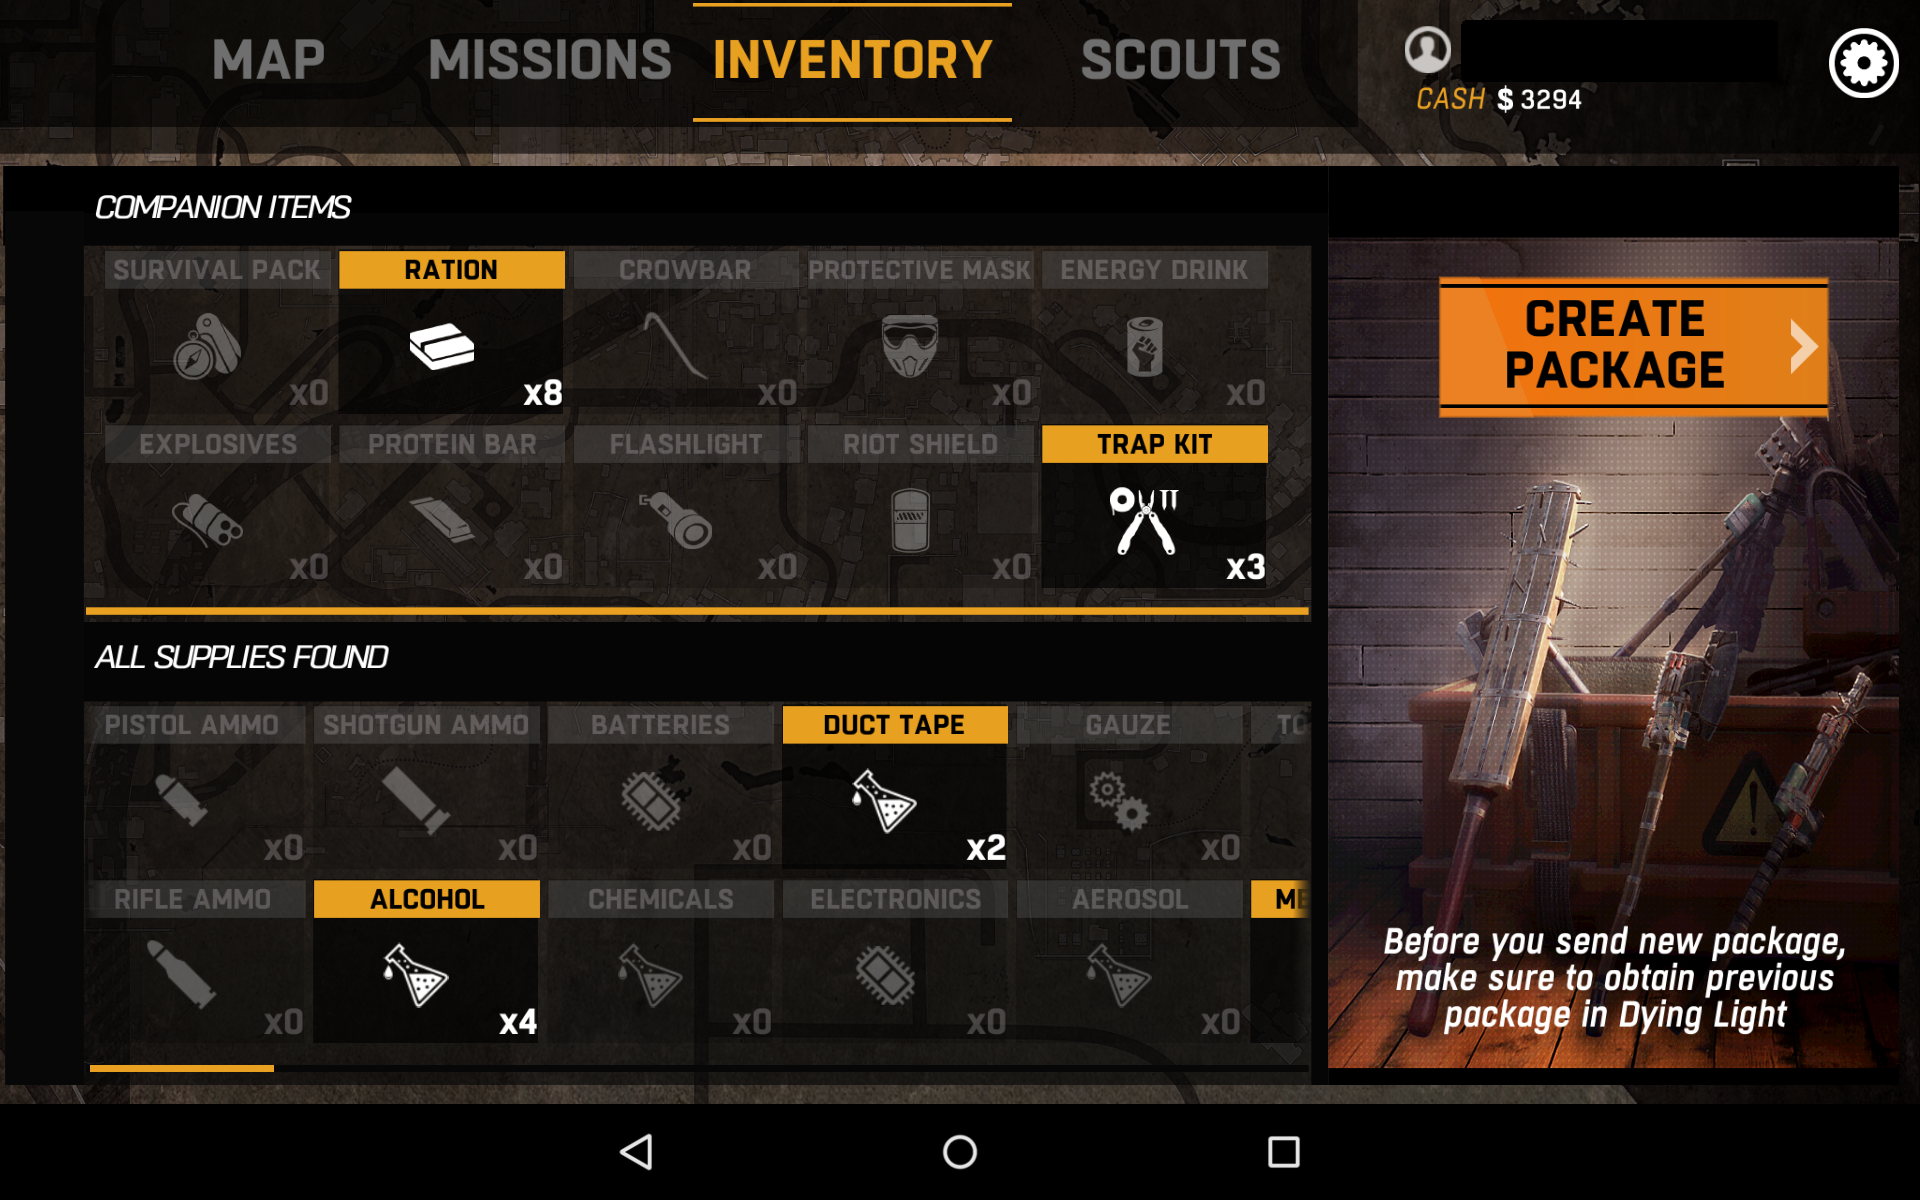 Dragonchasers » Dying Light companion app